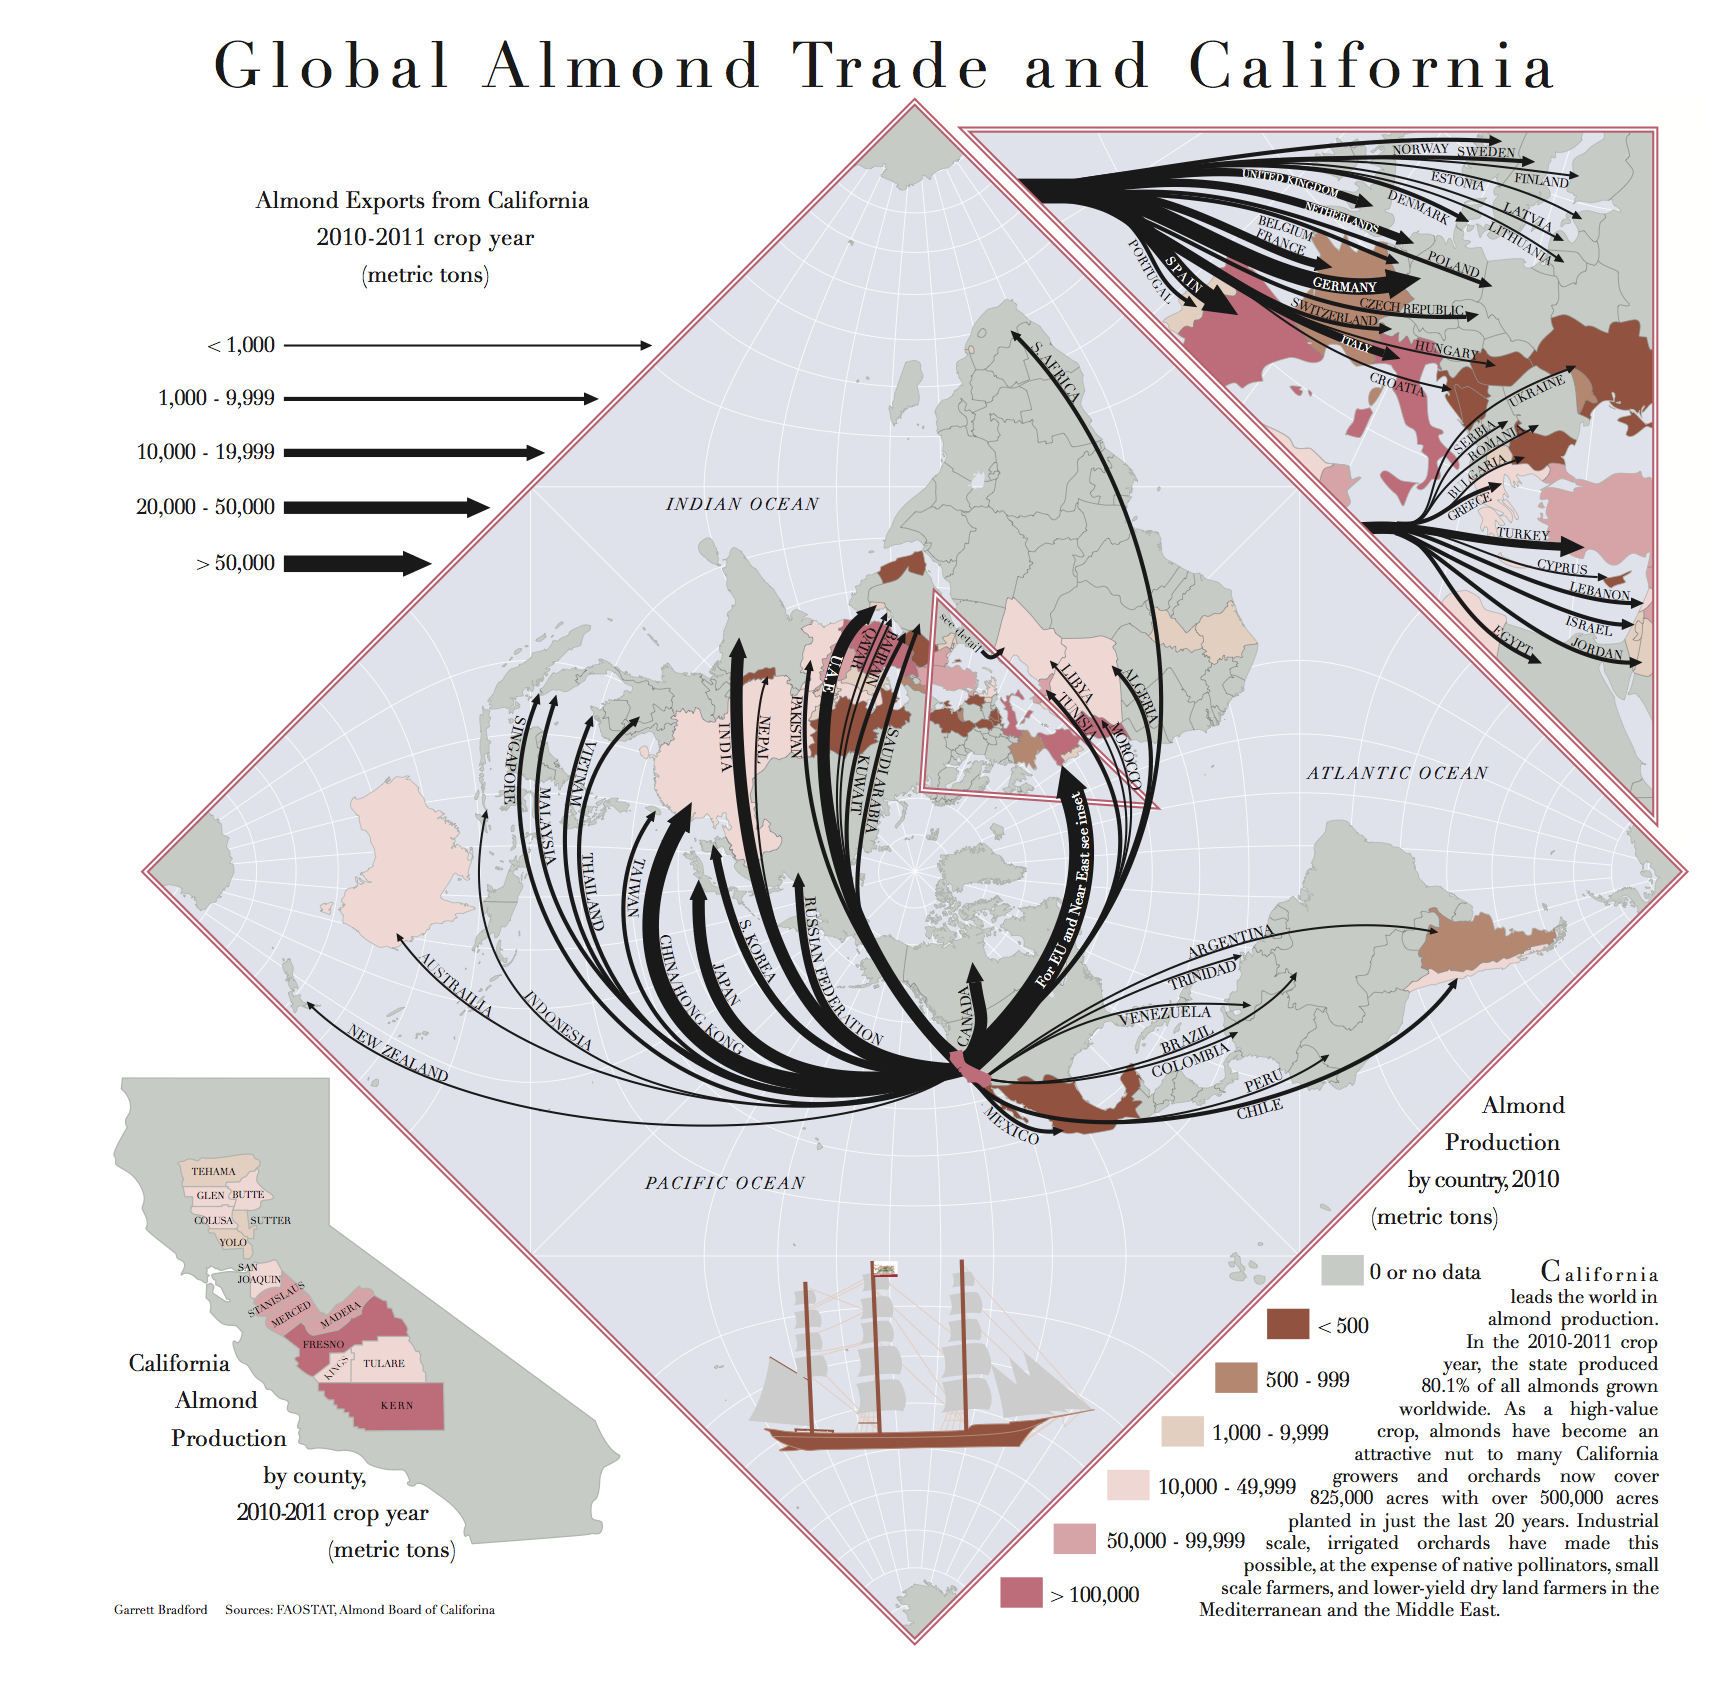 Global Almond Trade And California - A Mapgarrett Bradford - California Almond Production Map